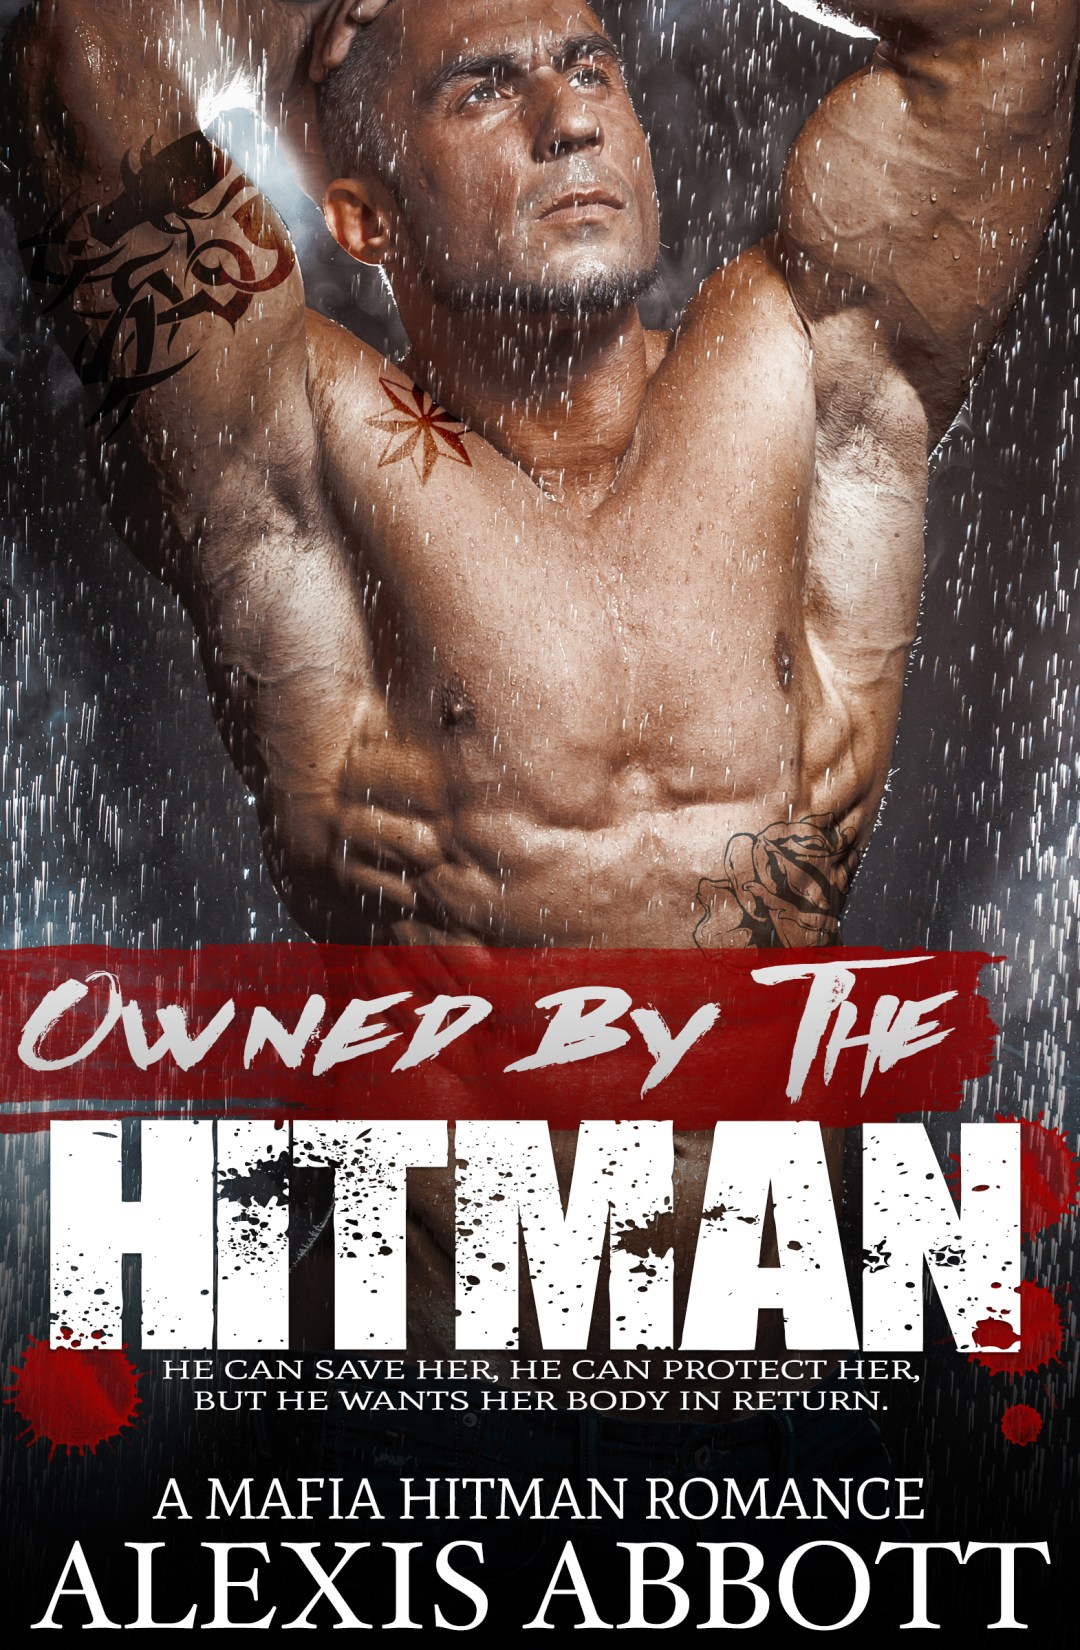 Alexis Abbott - Owned by the Hitman